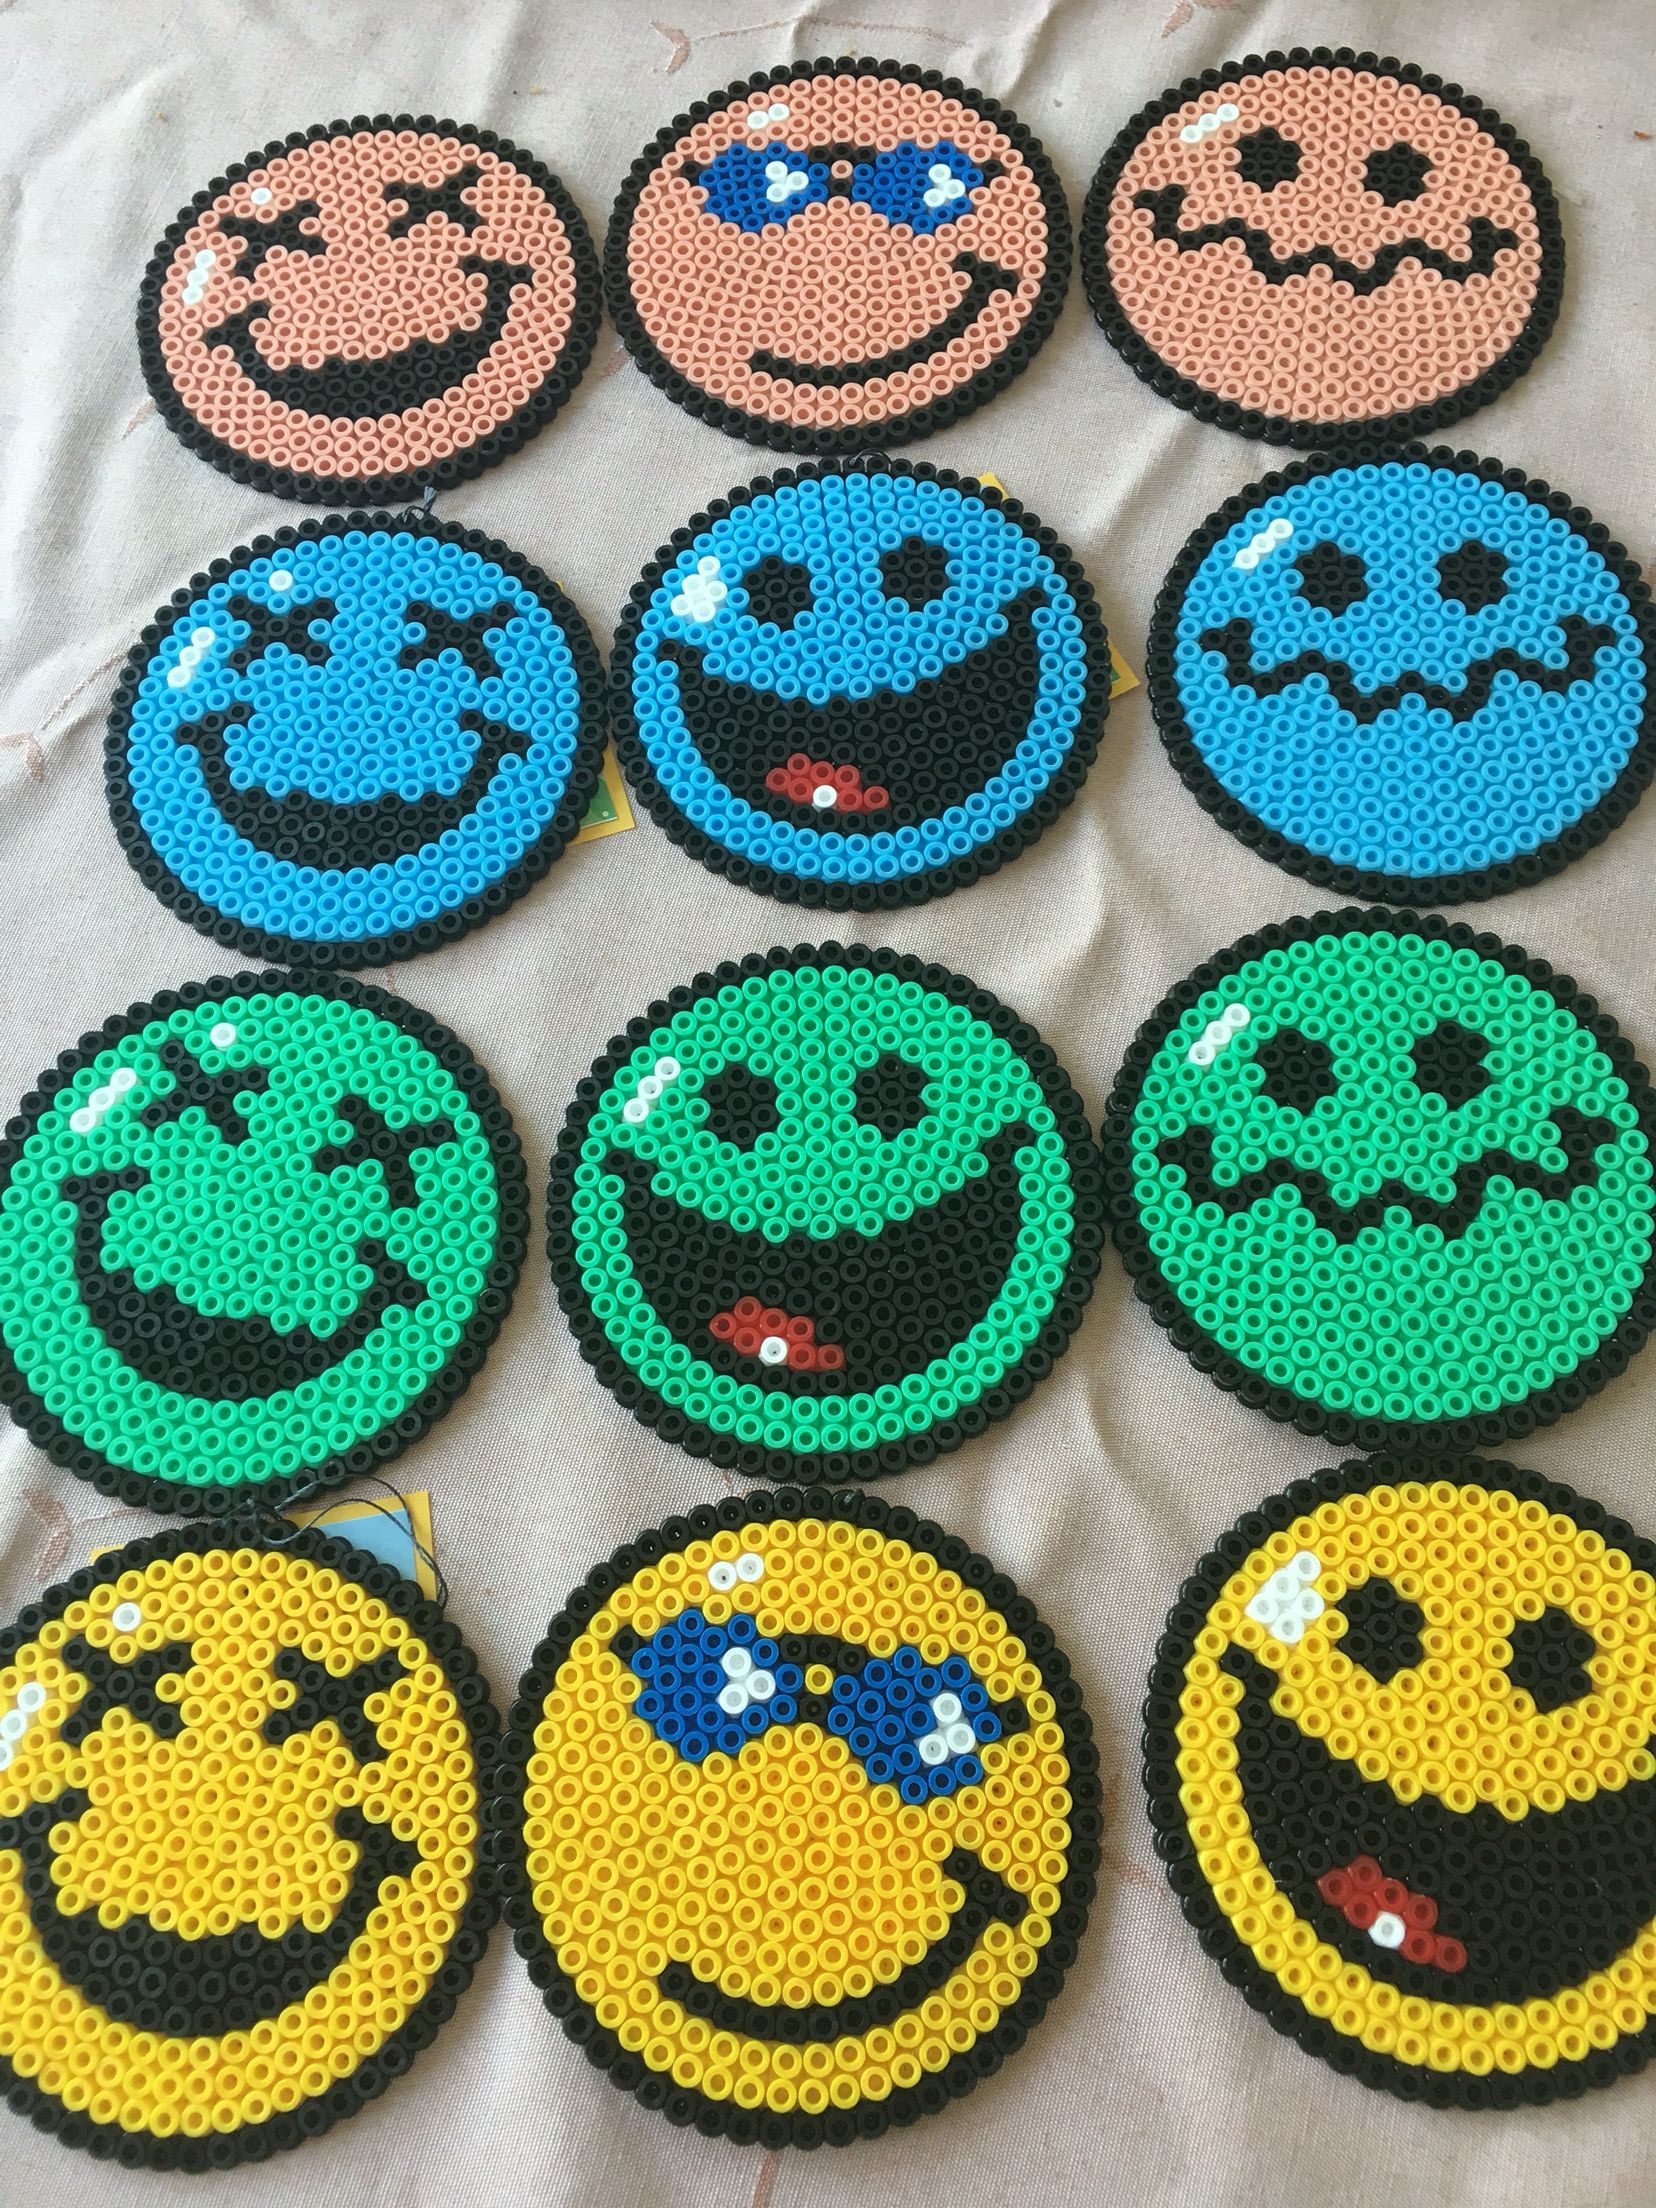 smiley miley 39 s 4th birthday give aways crafty hama. Black Bedroom Furniture Sets. Home Design Ideas